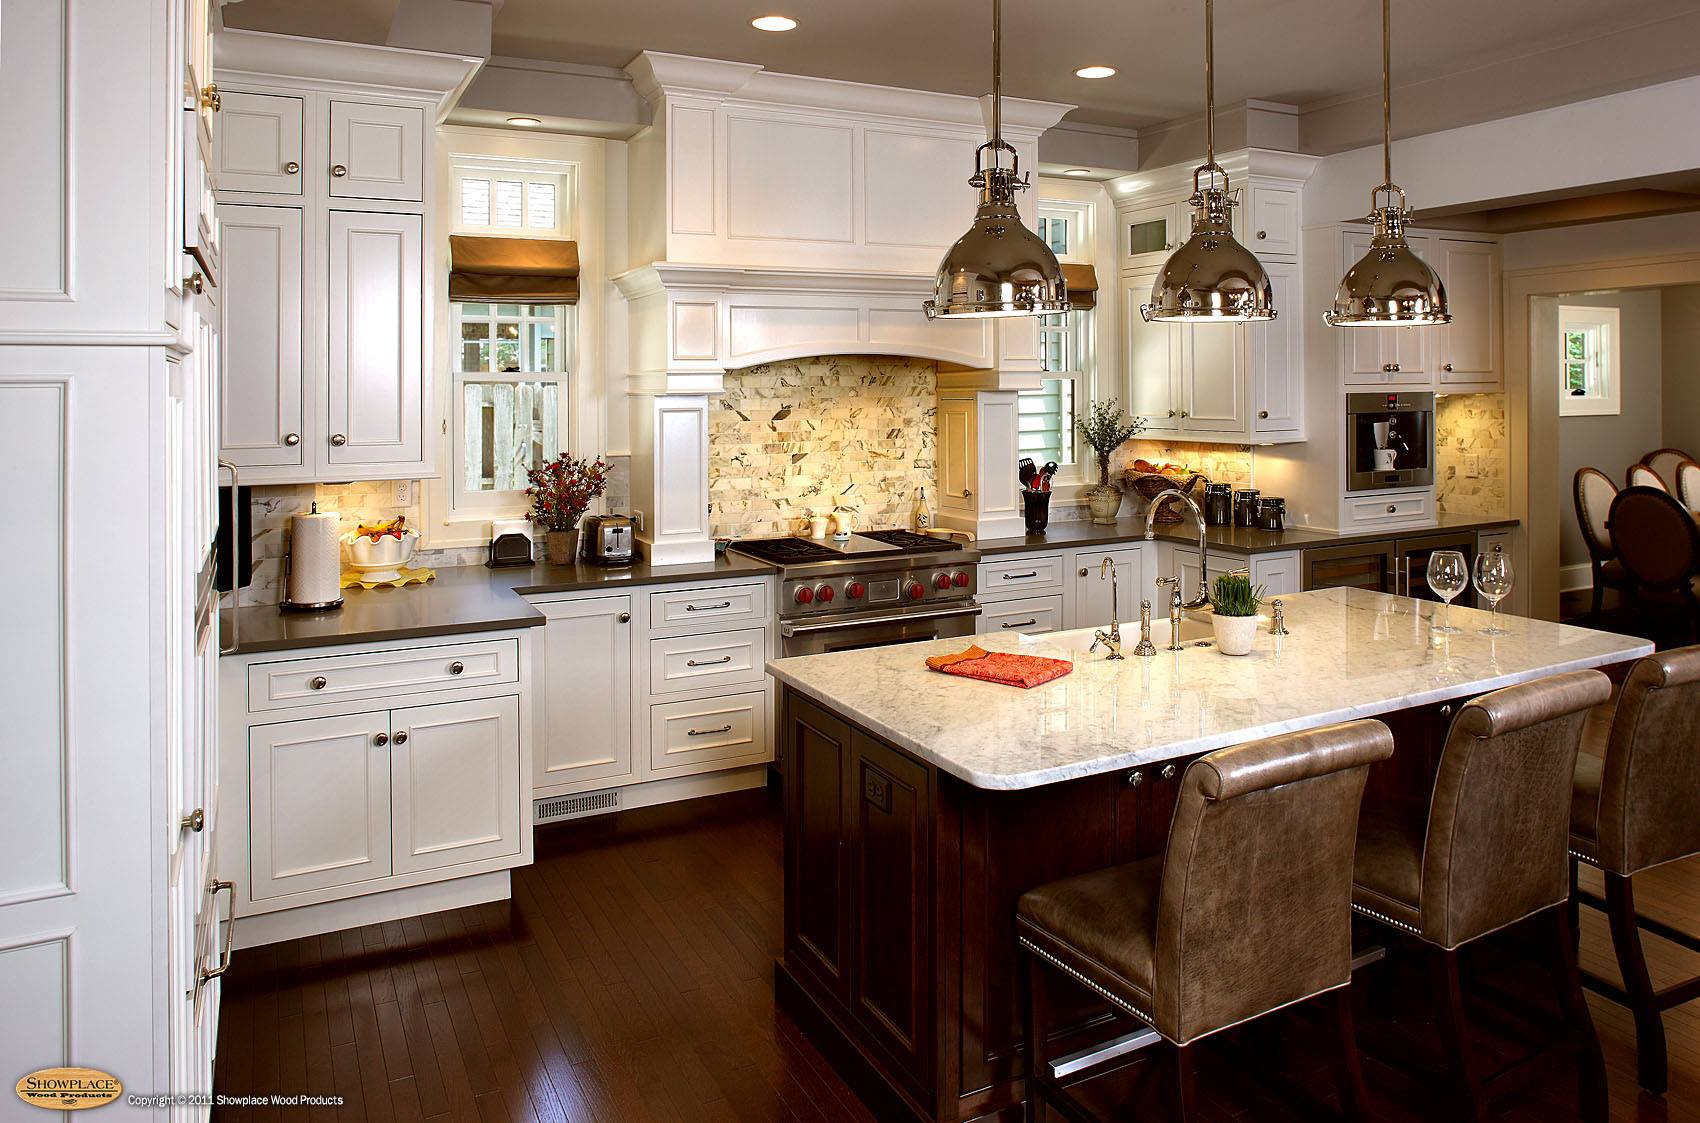 kitchen bath remolding design arlington va cabinets bathroom remodel